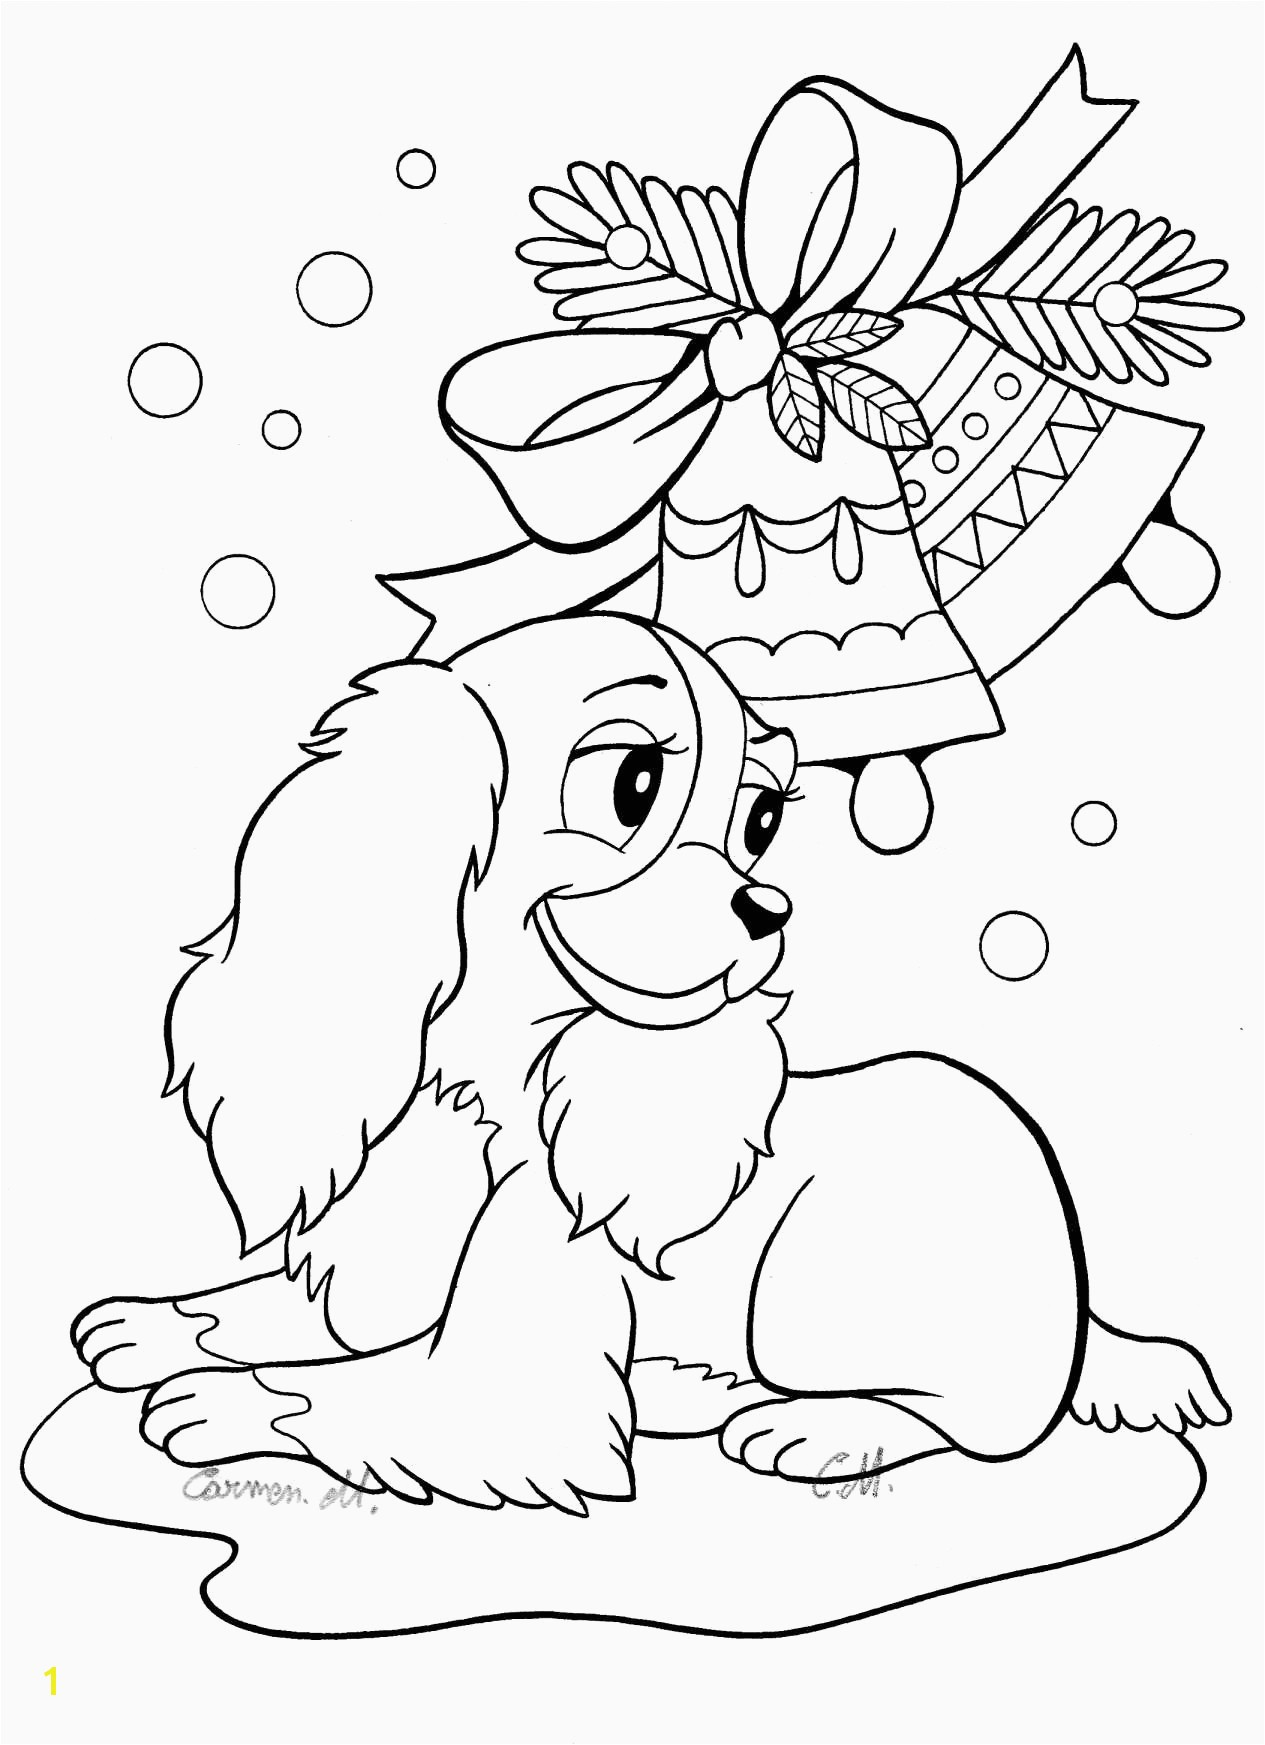 Awesome Coloring Pages Cute Animals Unique Printable Od Dog Coloring Coloring Pages Girls In Dresses Free American Girl